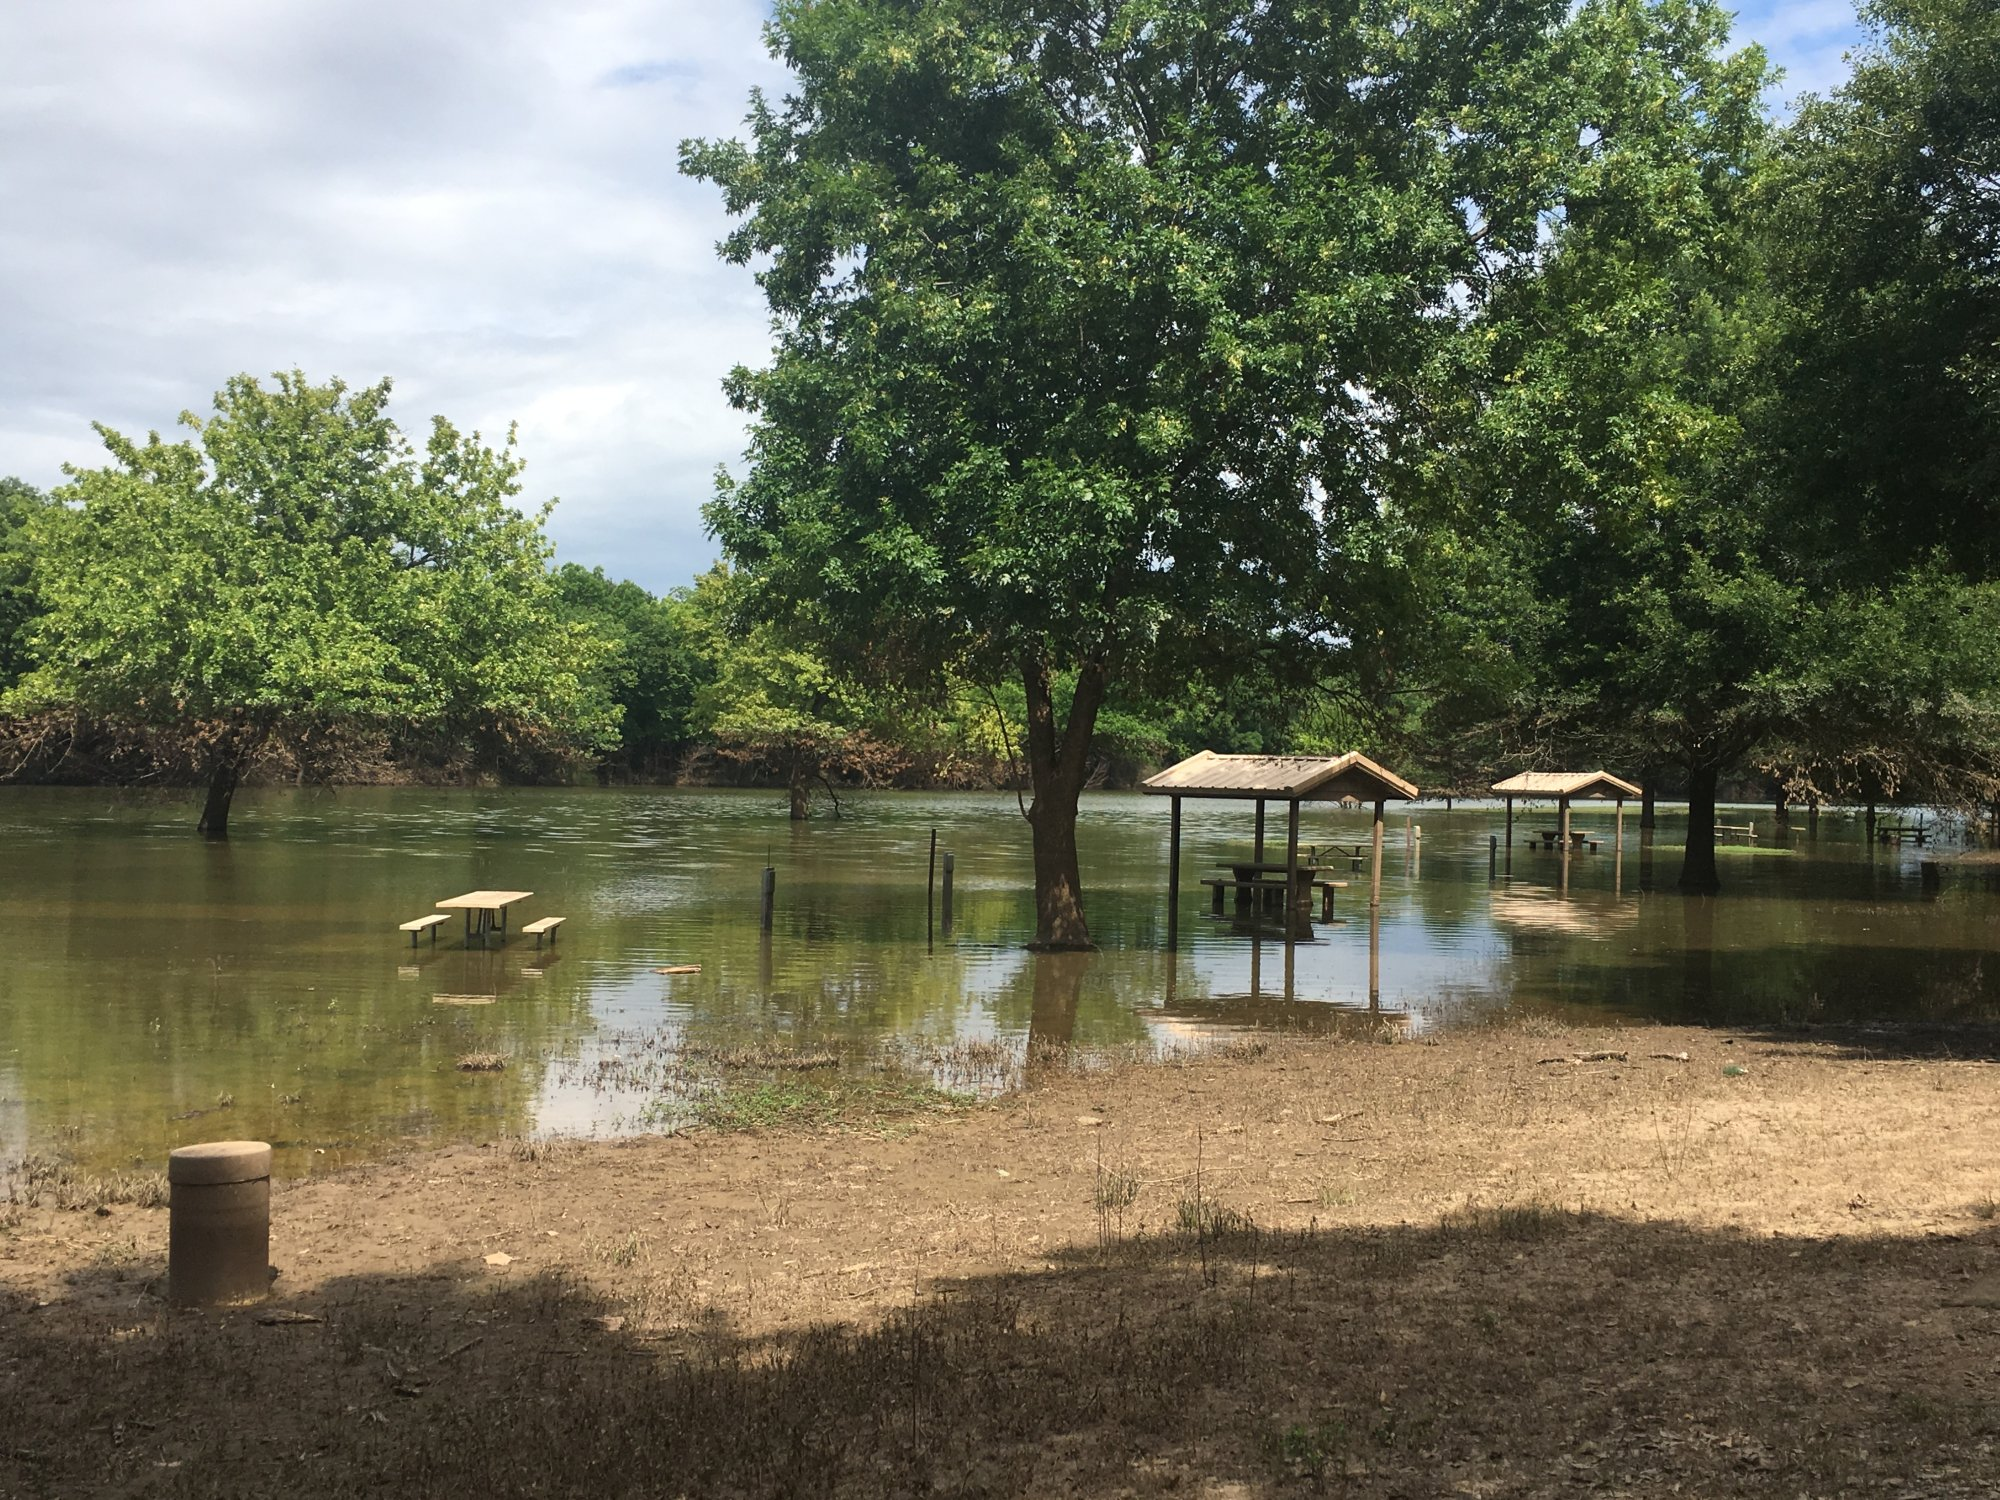 Picnic areas are still underwater at the Clear Creek Park near Kibler, which was severely damaged by the spring floods. (Courtesy U.S. Army Corps of Engineers)